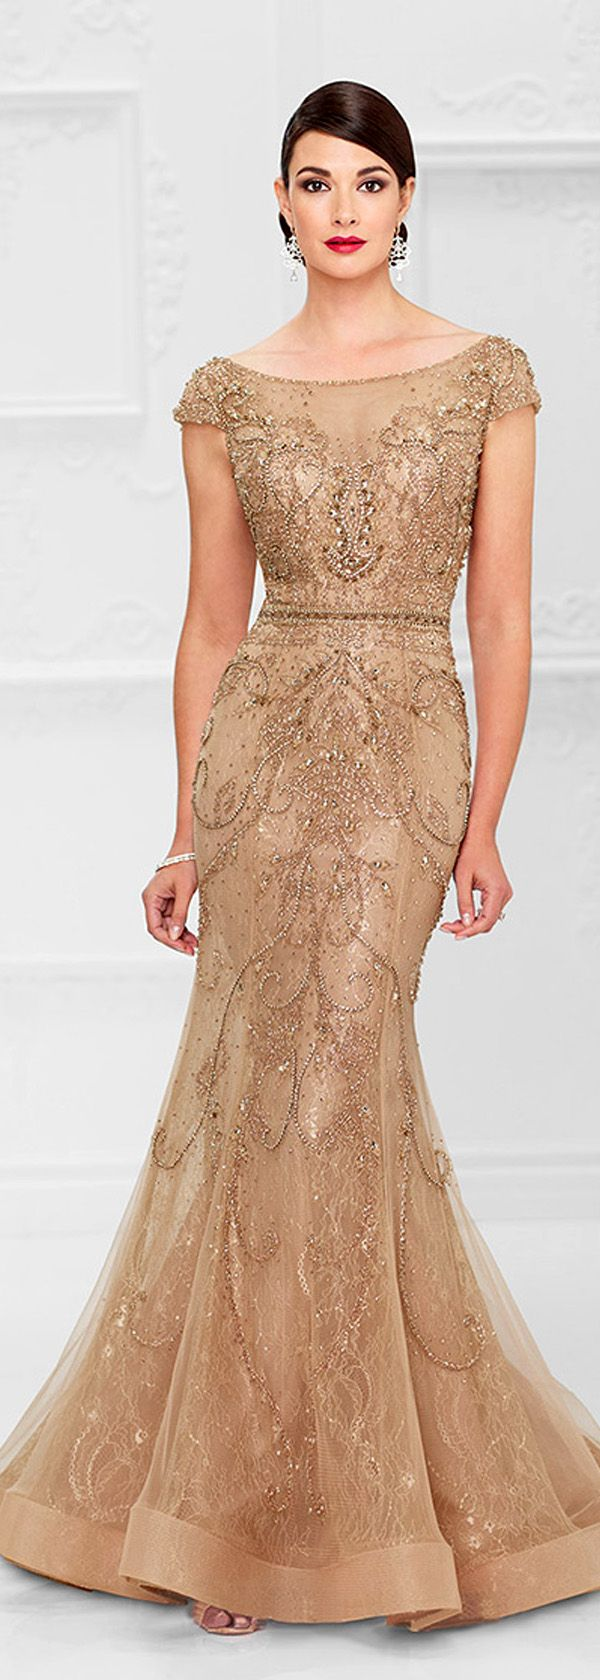 Chic tulle u lace bateau neckline mermaid mother of the bride